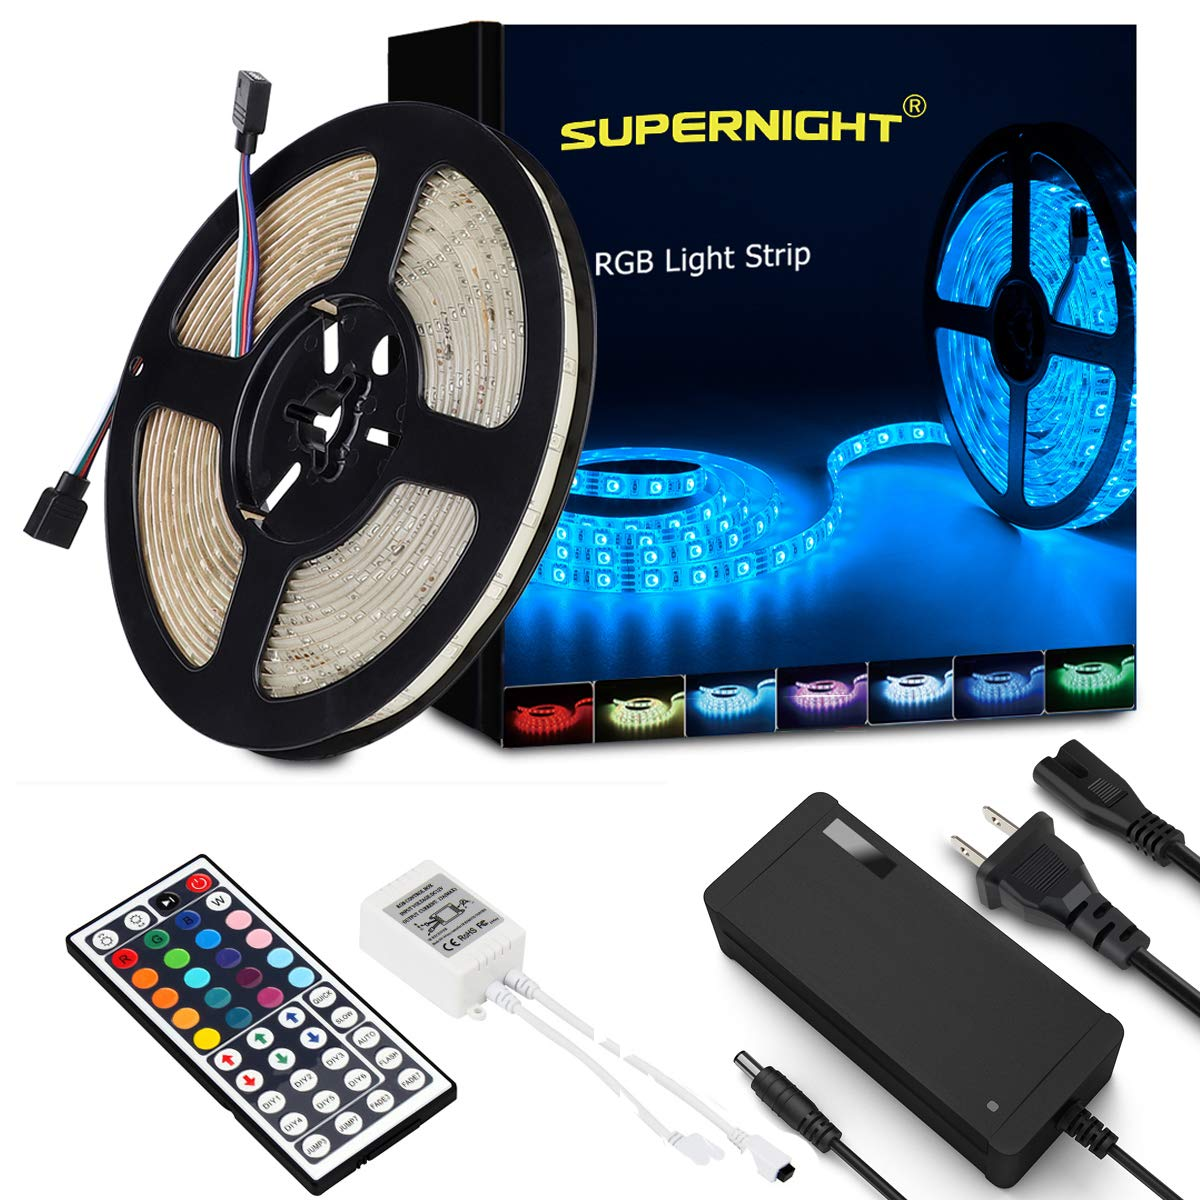 SUPERNIGHT LED Strip Lights, 16.4Ft RGB Color Changing SMD5050 300 LEDs Flexible Light Strip Waterproof Kit with 44 Key Remote Controller and 12V 5A Power Supply by SUPERNIGHT